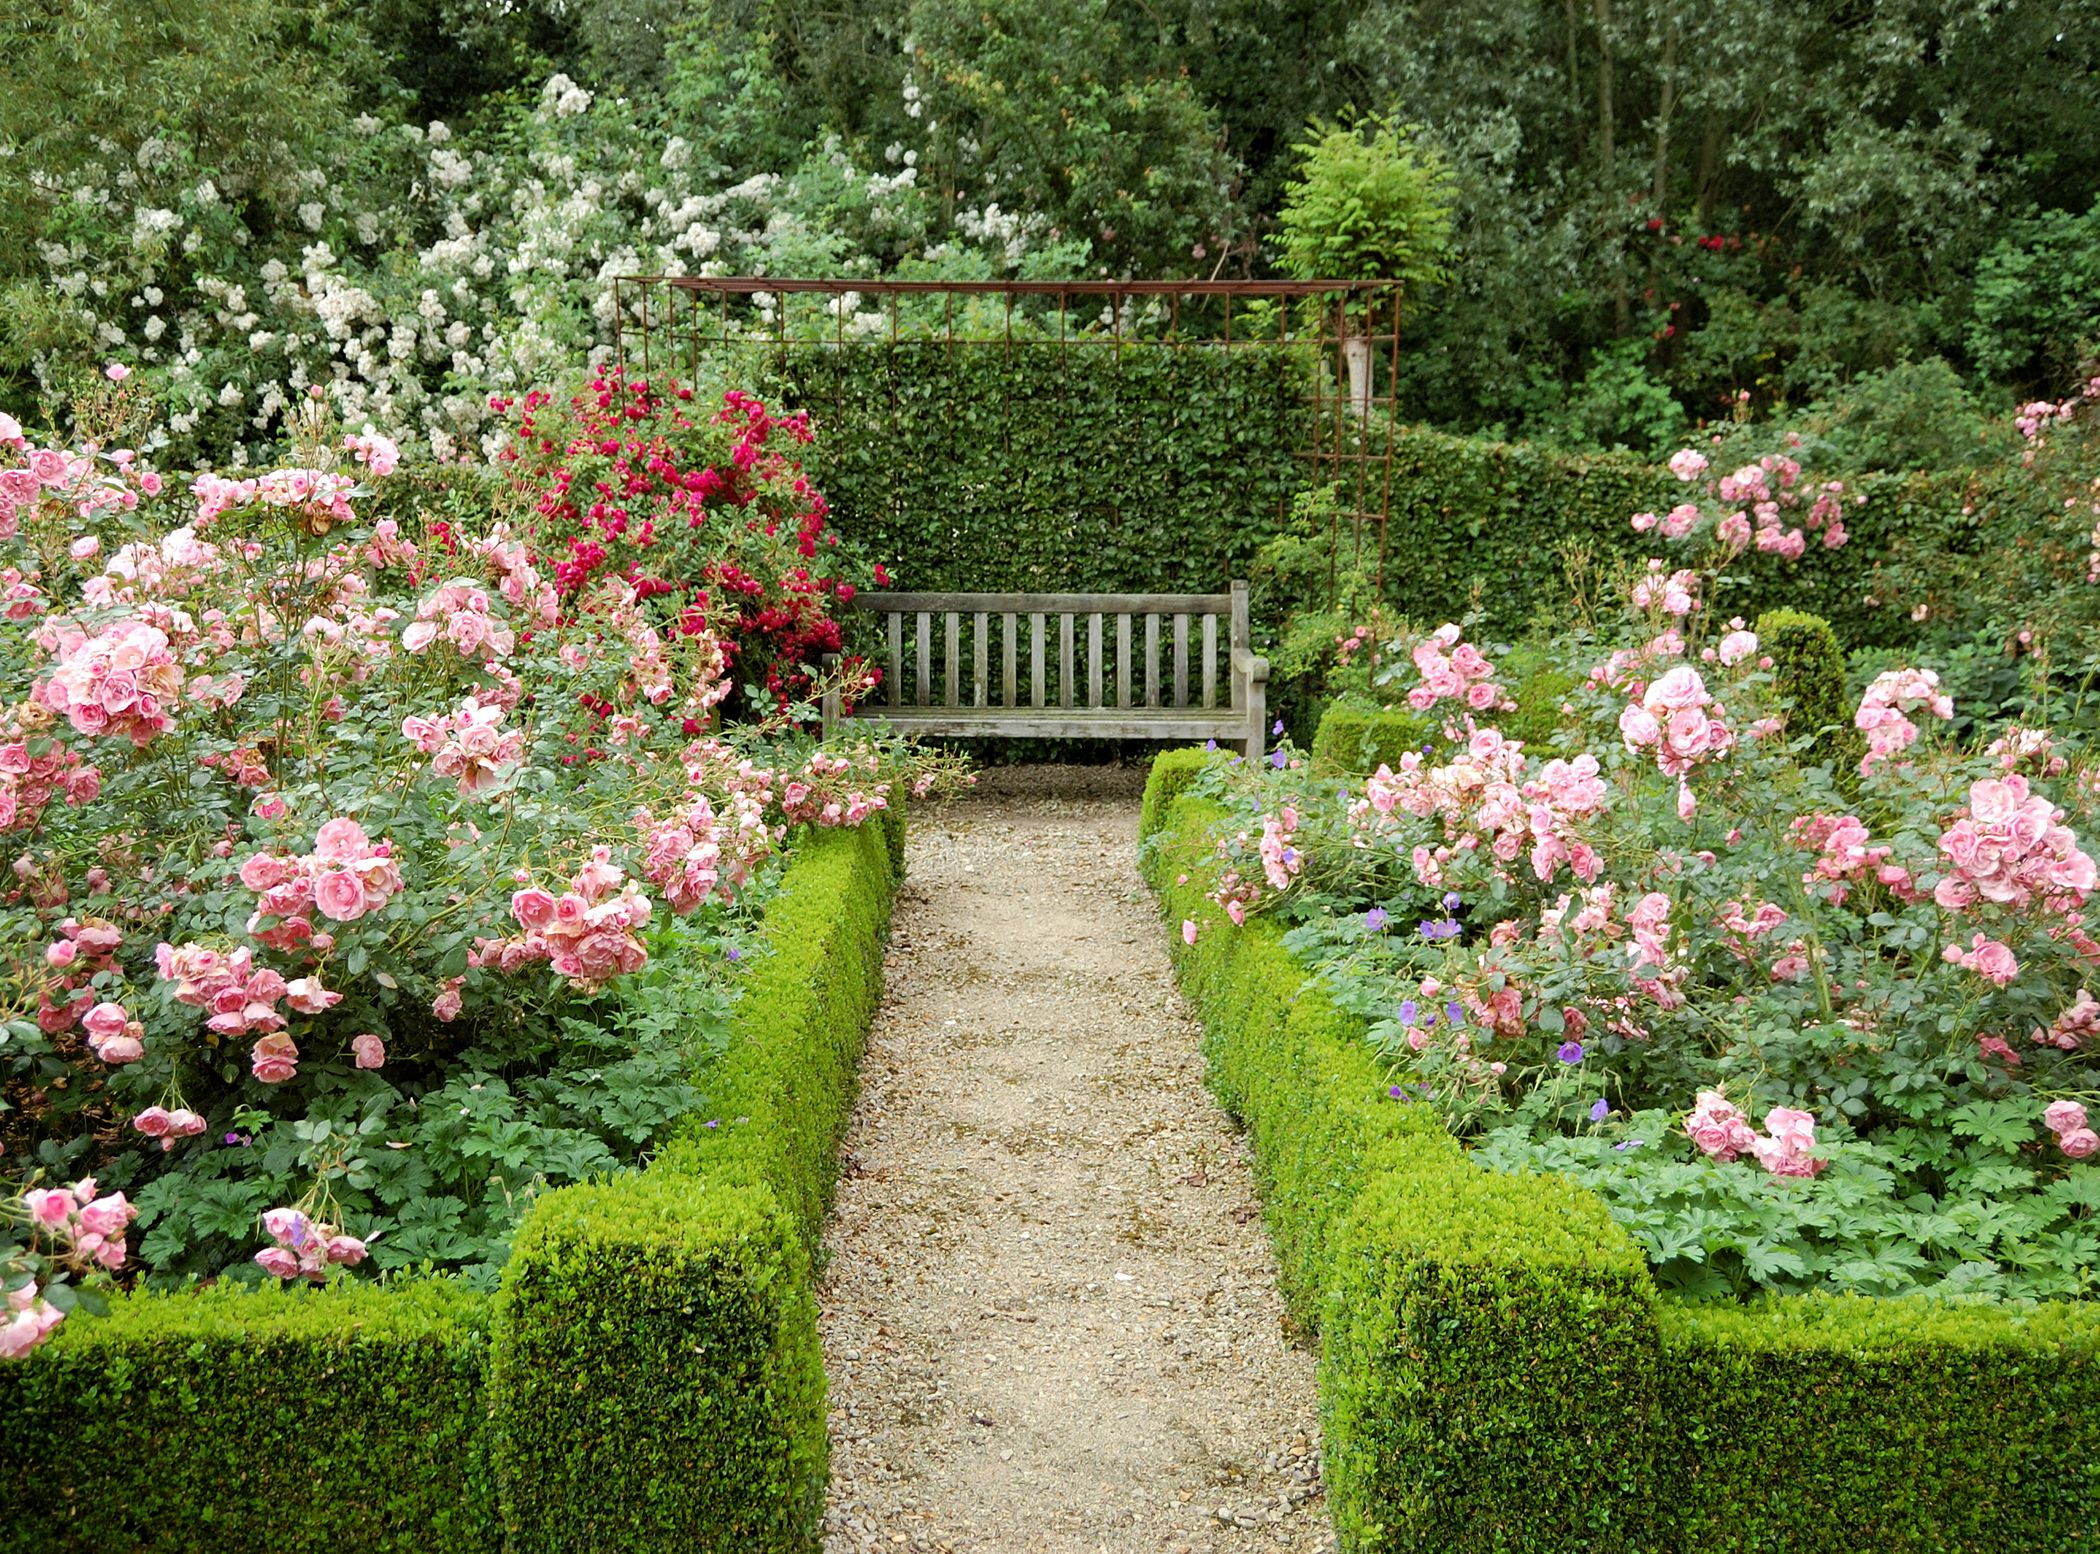 10 english garden design ideas how to make an english garden landscape ccuart Images